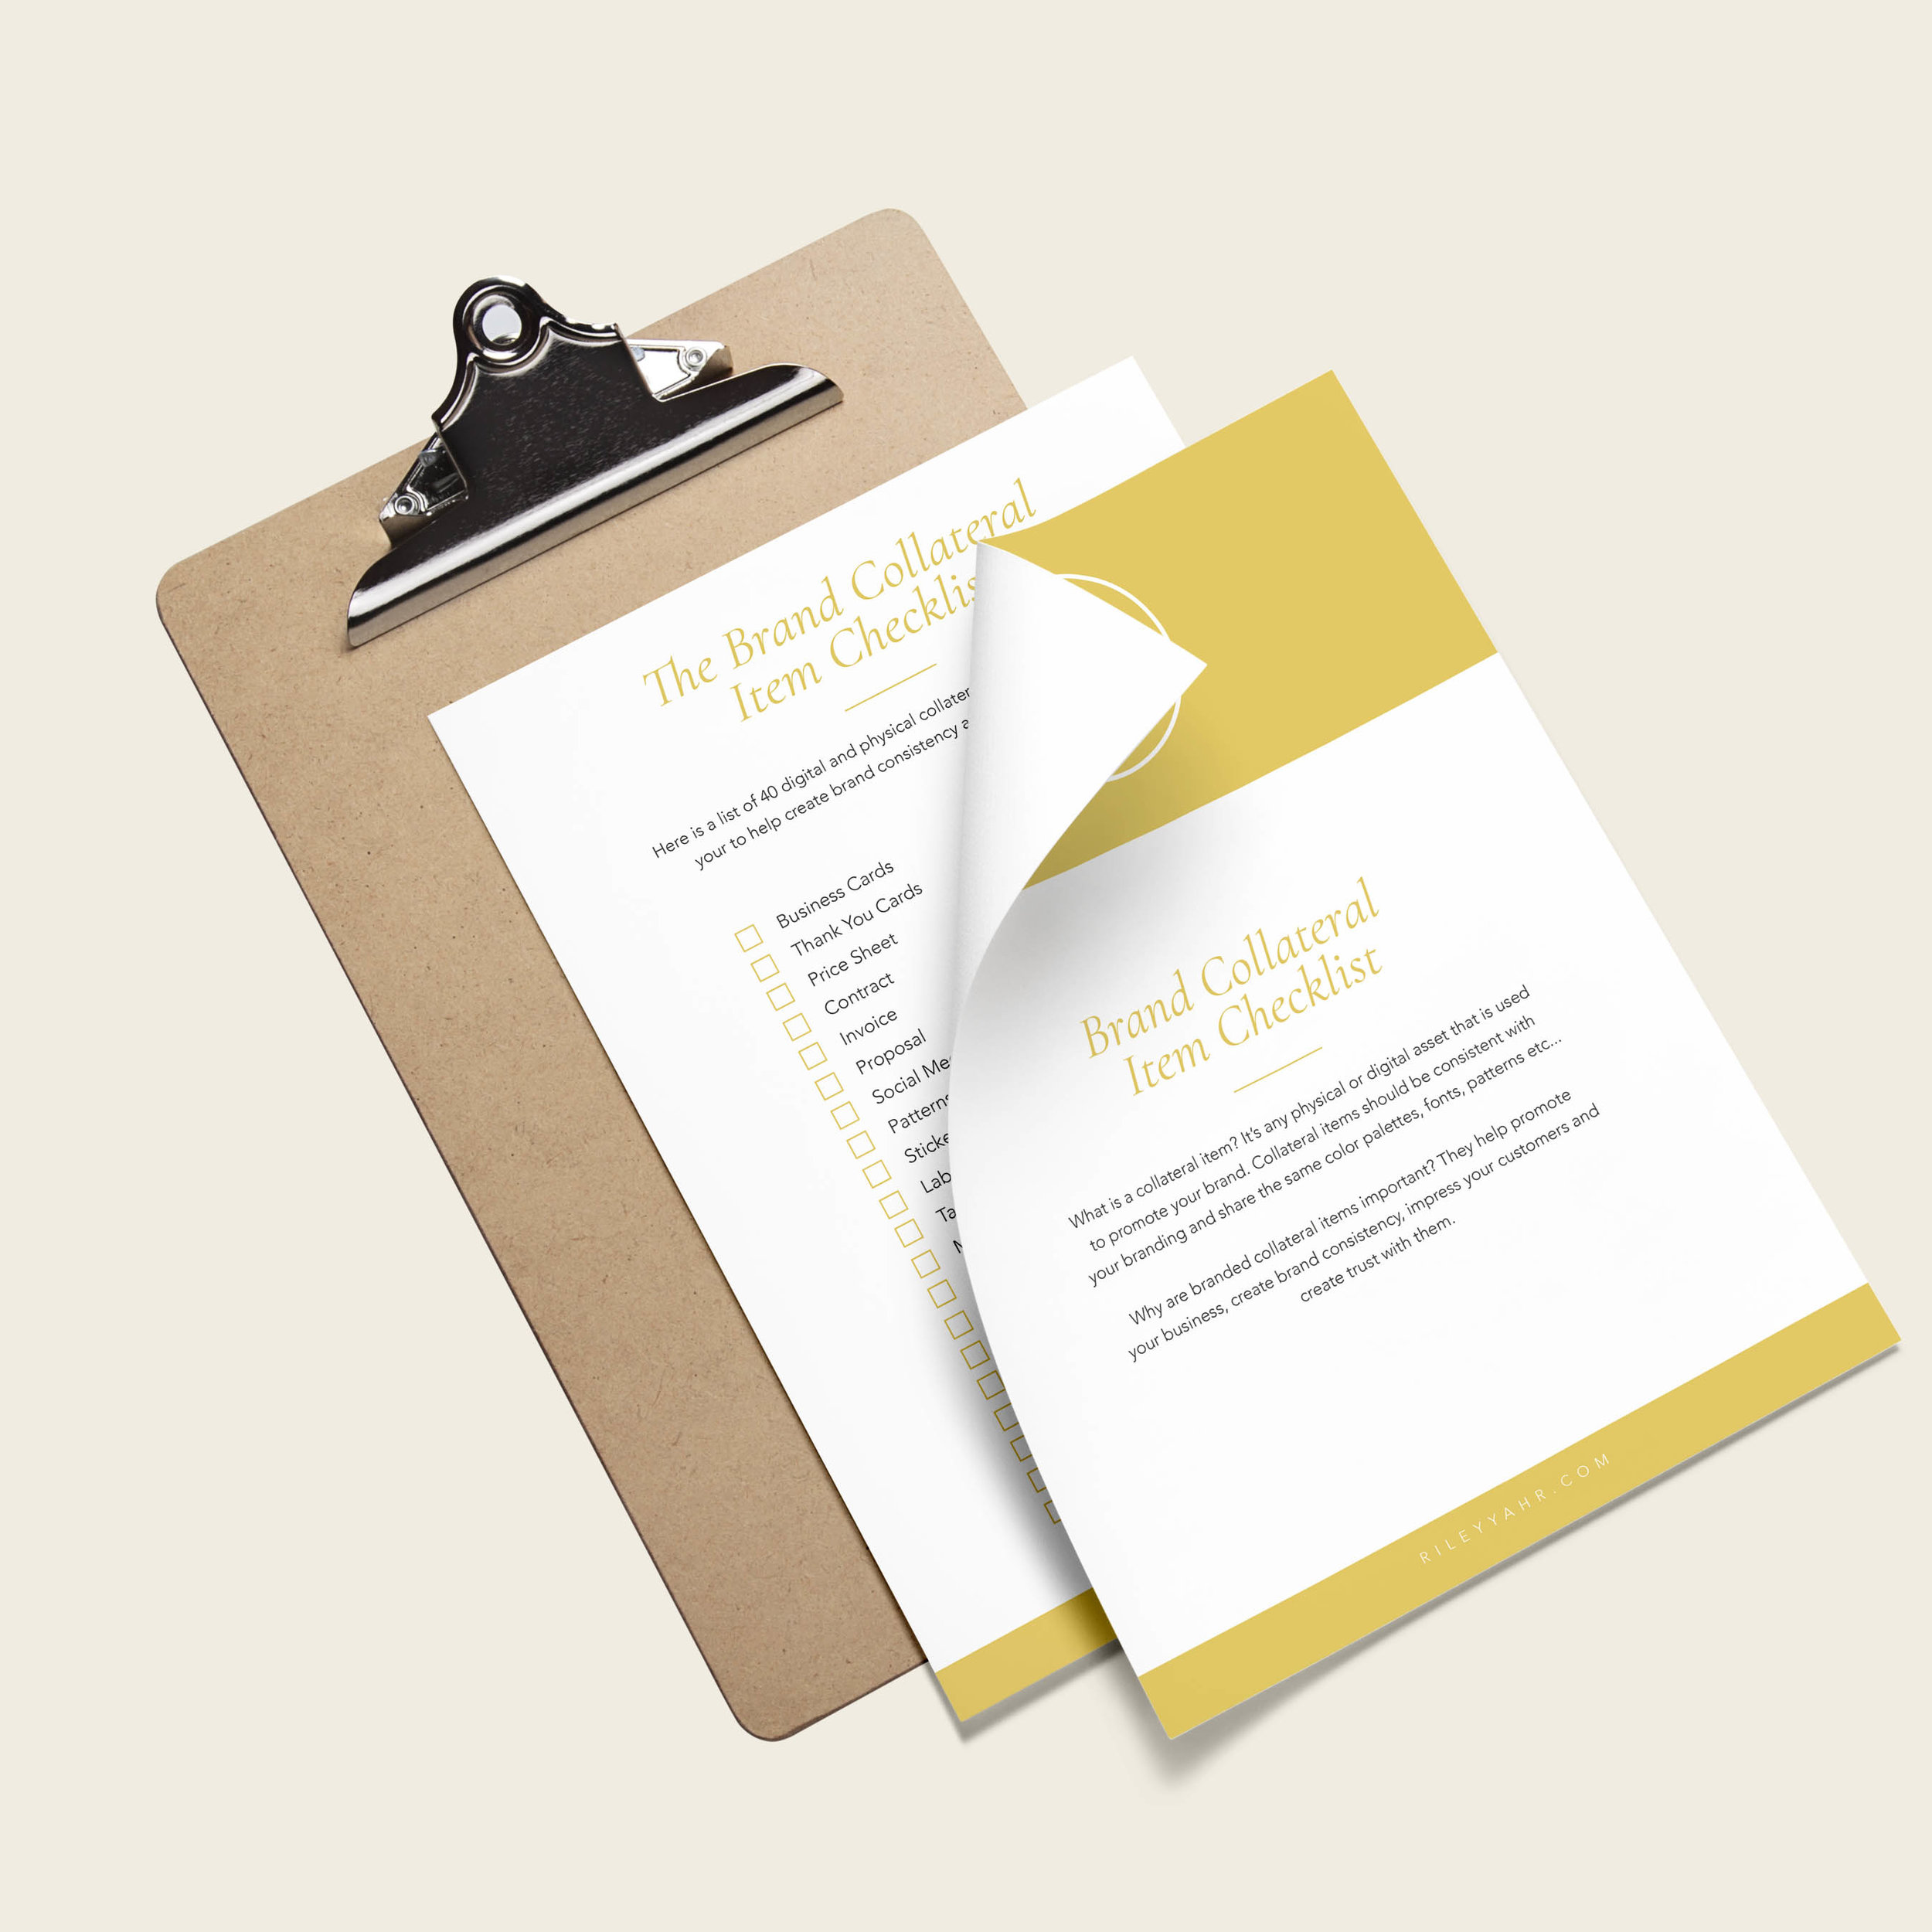 The Brand Collateral Item Checklist -